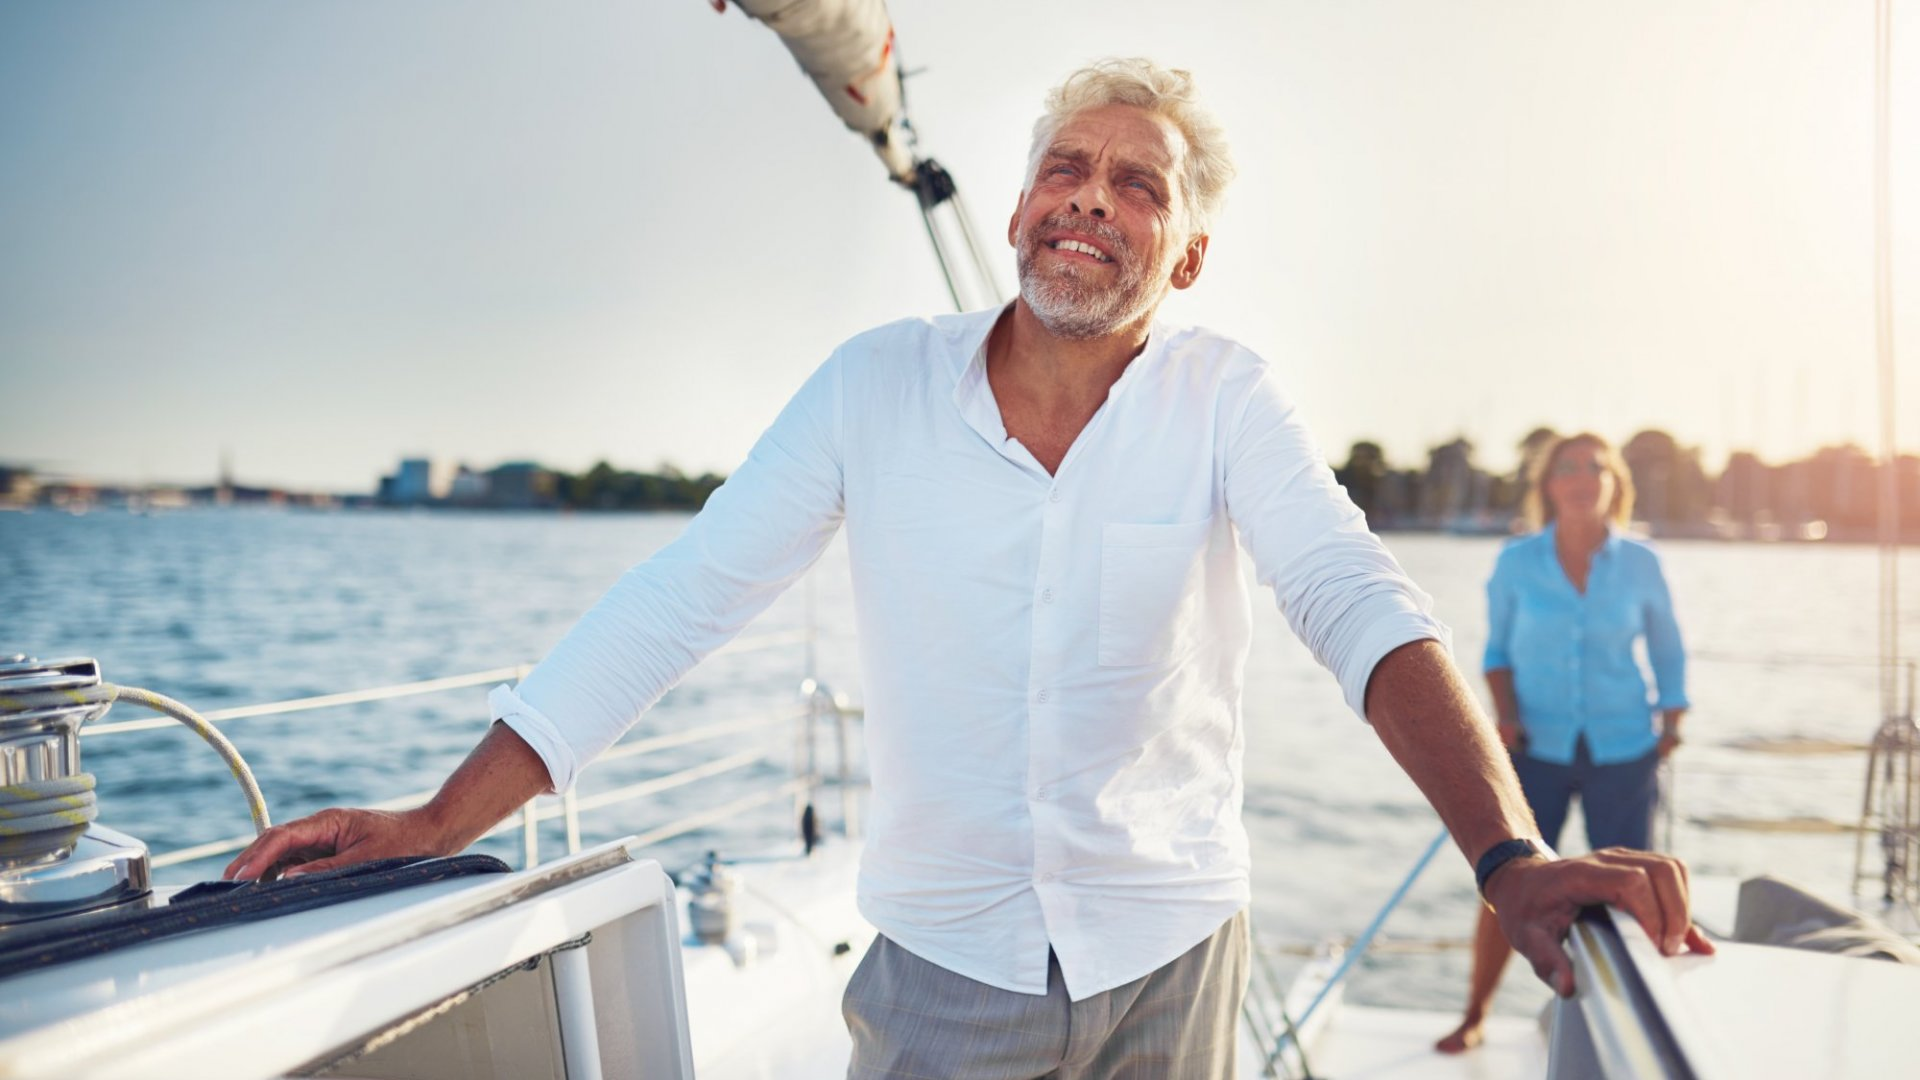 A Massive New Study Says 87 Percent of Millionaires Have 1 Stunning Thing in Common. (If You're Not a Millionaire, It Might Be Very Hard to Understand)